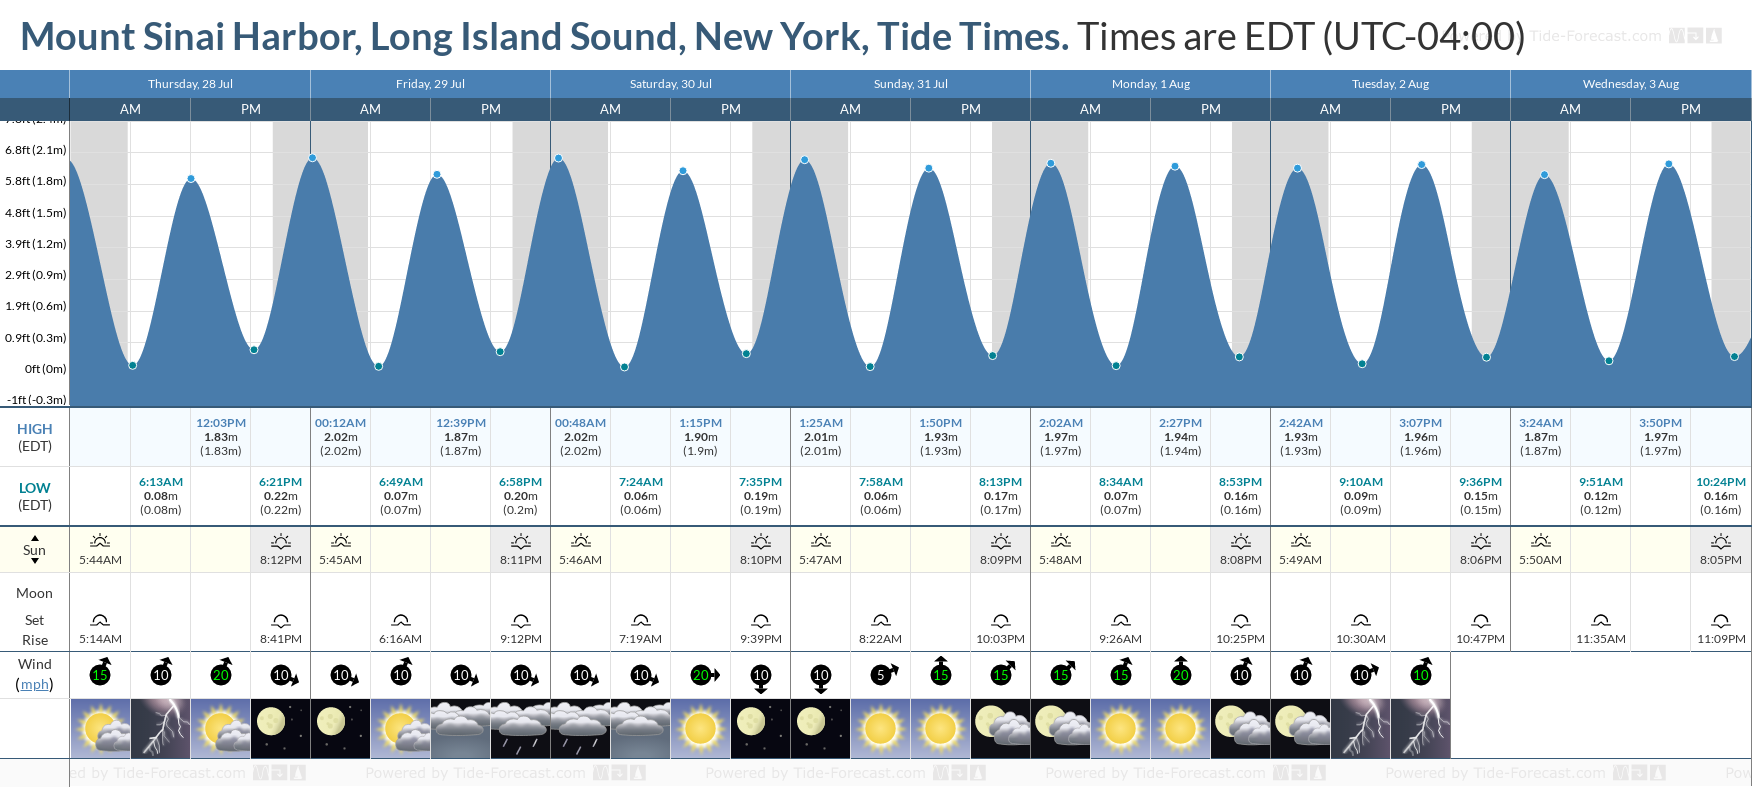 Mount Sinai Harbor, Long Island Sound, New York Tide Chart including high and low tide tide times for the next 7 days